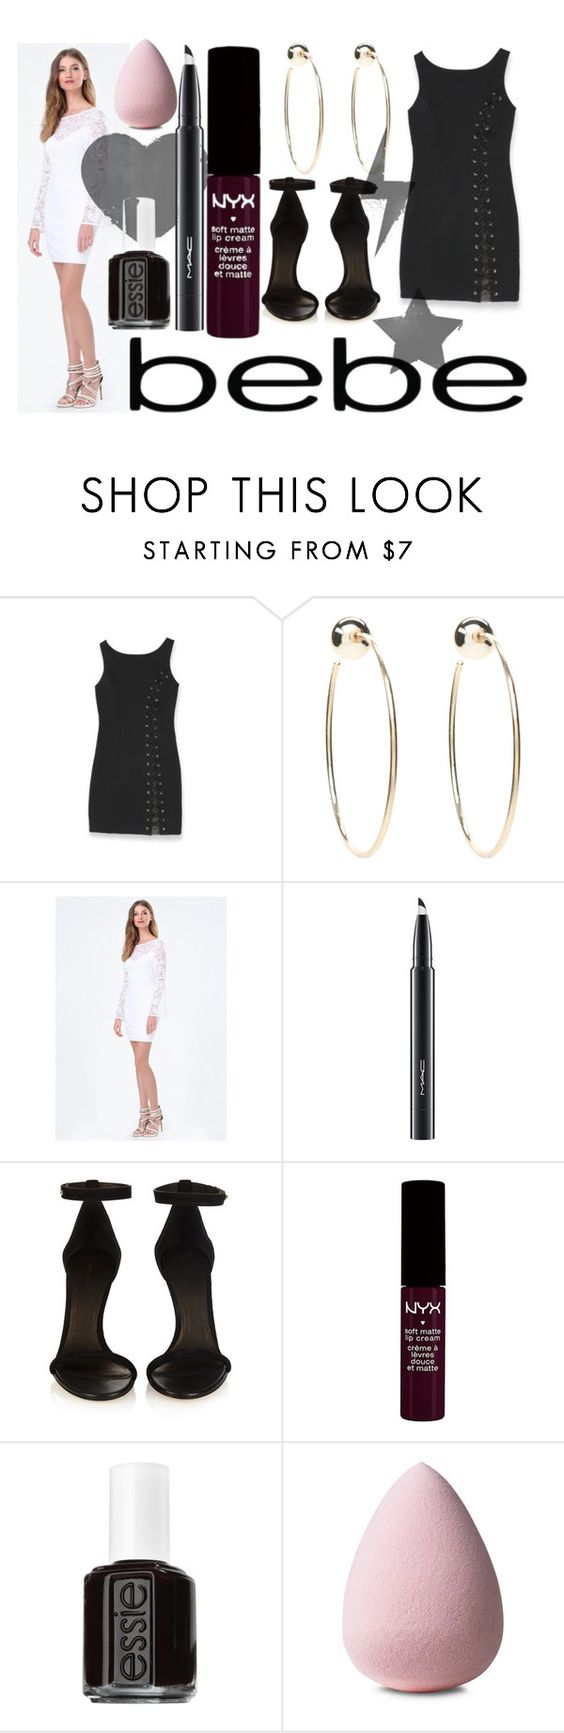 """All Laced Up for Spring with bebe: Contest Entry"" by perbhaatkhowaja ❤ liked on Polyvore featuring Bebe, MAC Cosmetics, Isabel Marant, NYX, Essie and alllacedup"